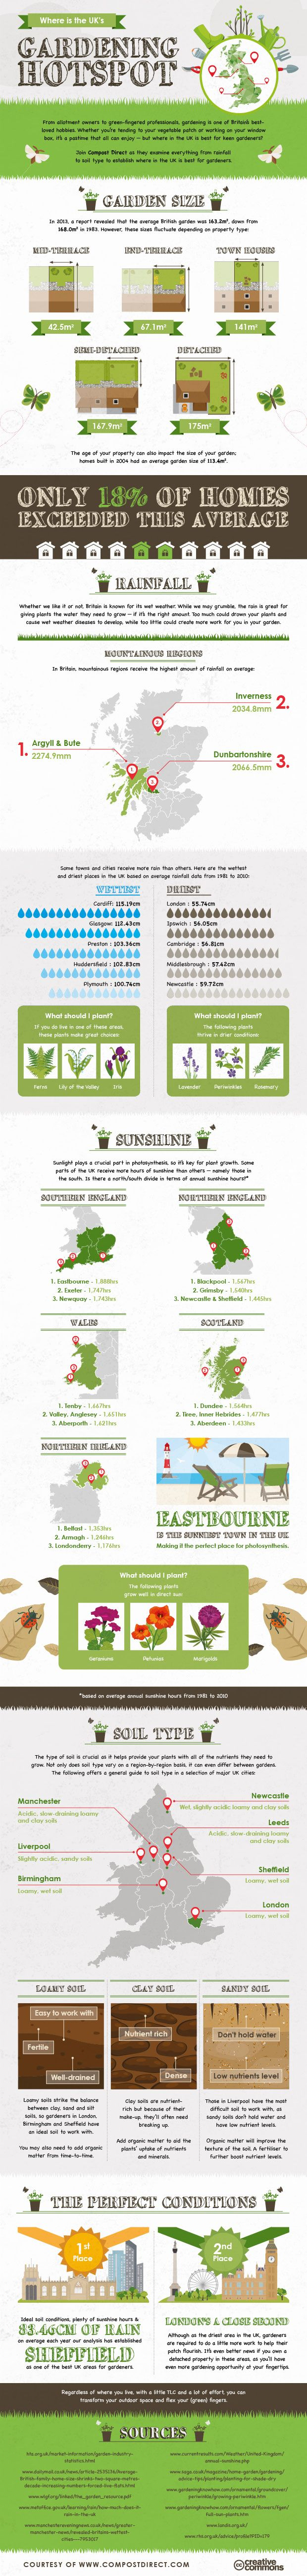 Where can we find the UK's gardening hotspot?